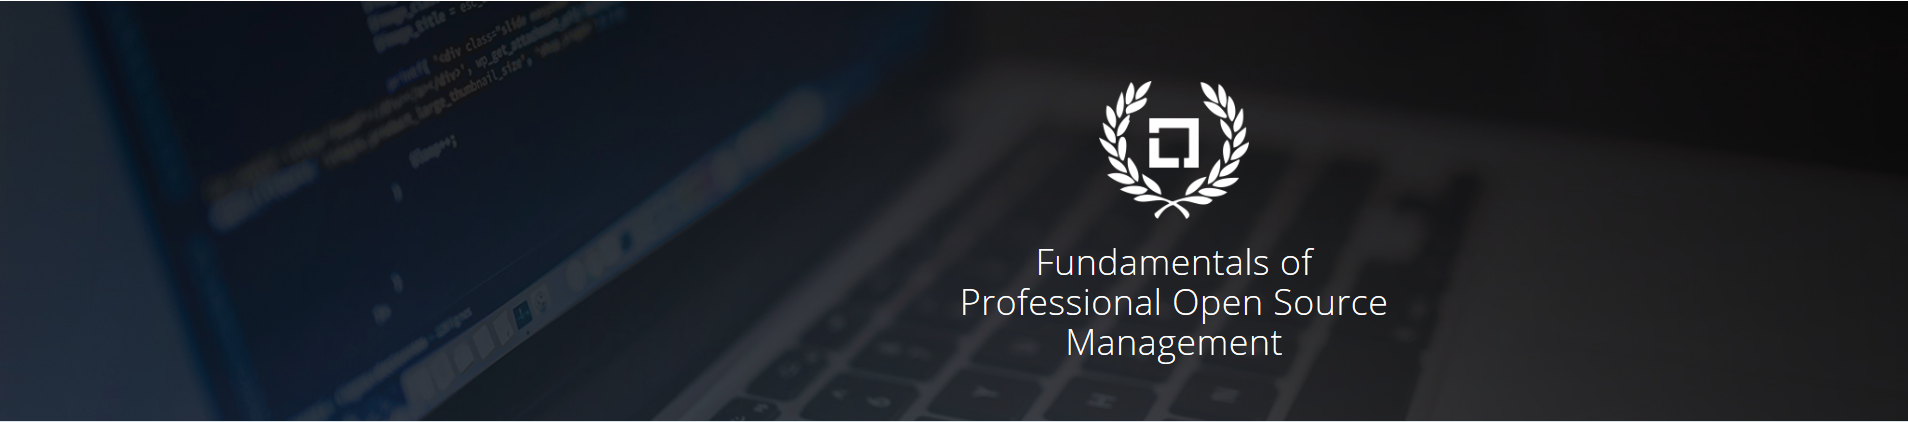 Fundamentals of Professional Open Source Management